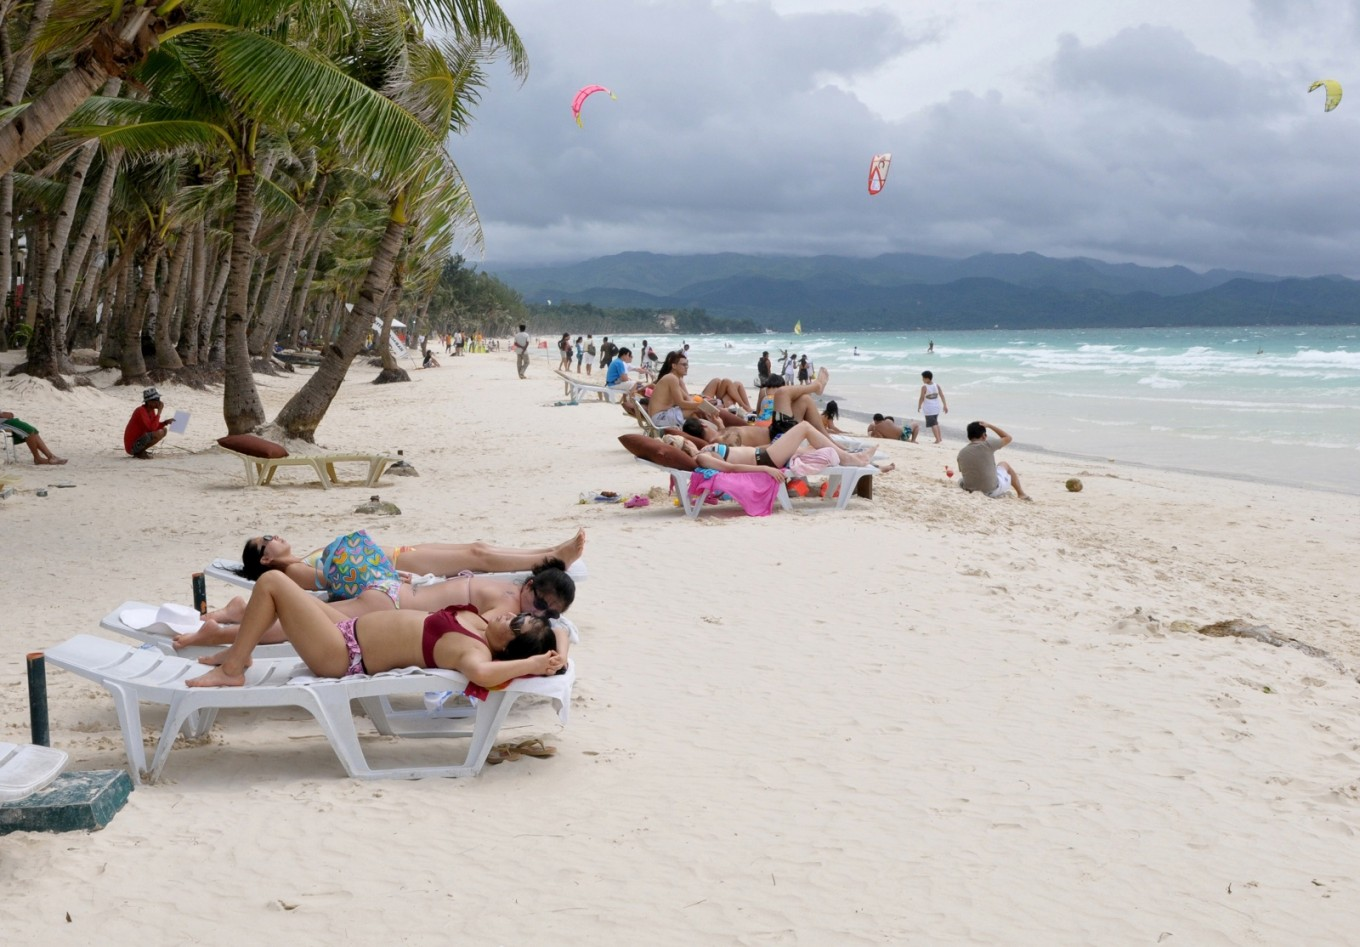 Expert suggests beach vacations could increase stress